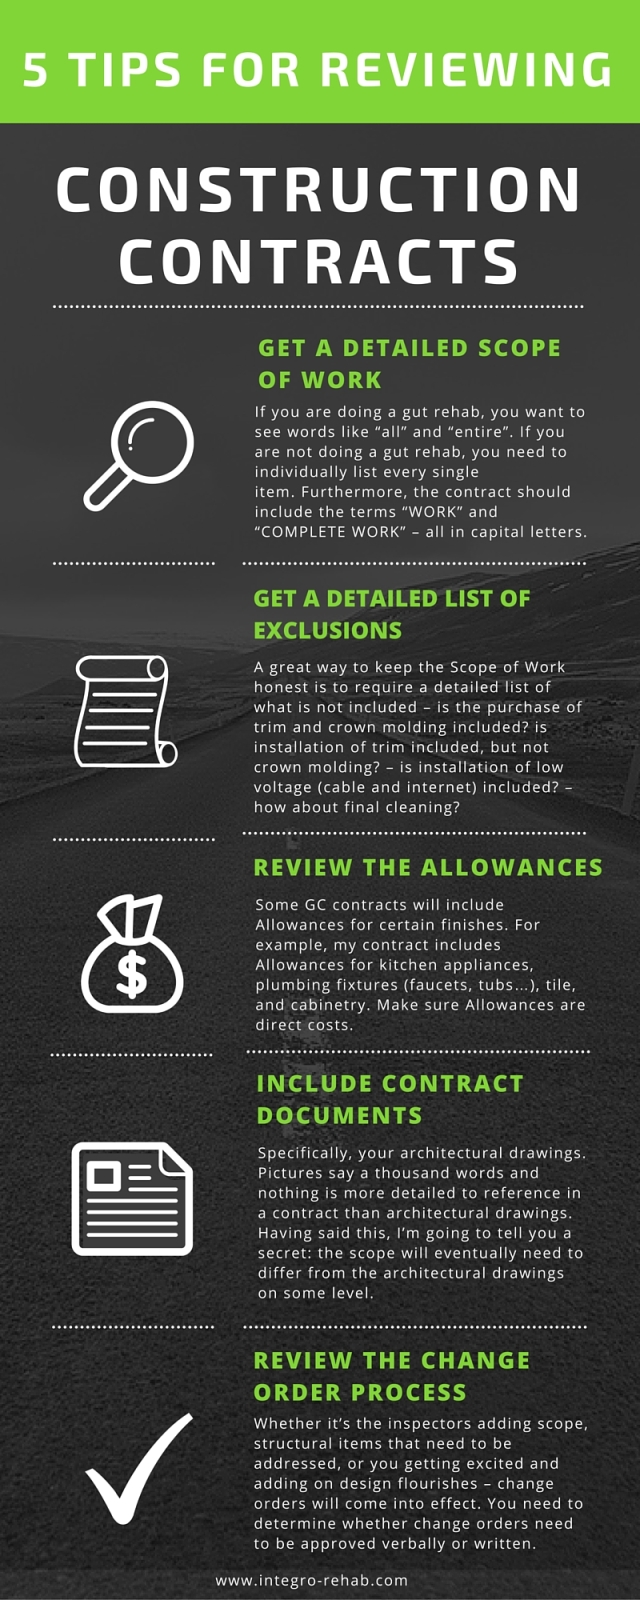 5 Tips for Reviewing Construction Contracts